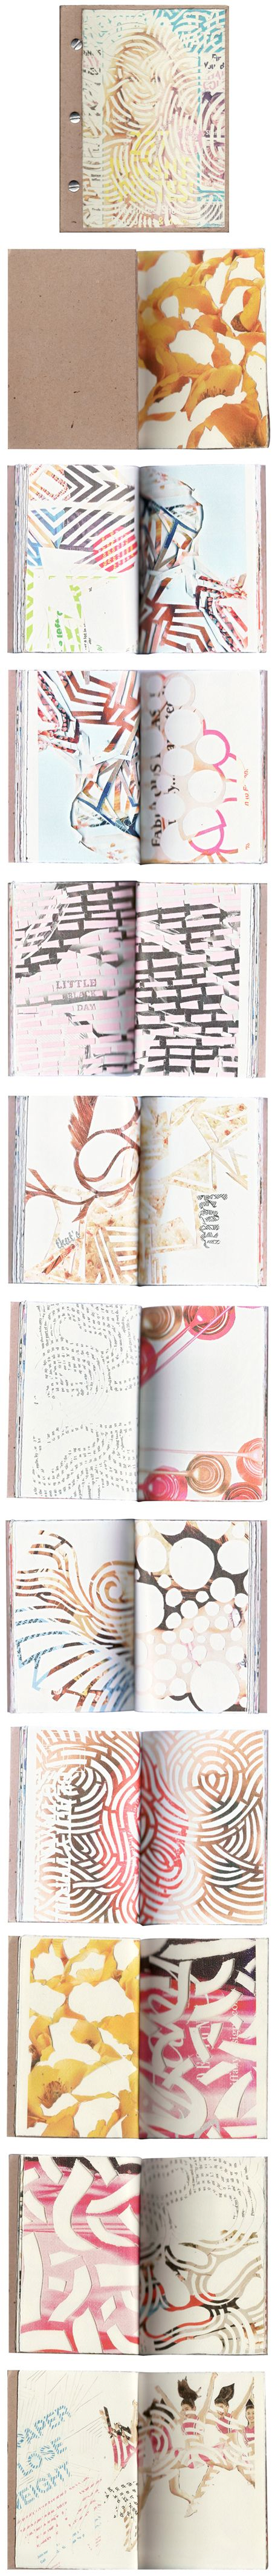 paper cut out pics - great art journaling project